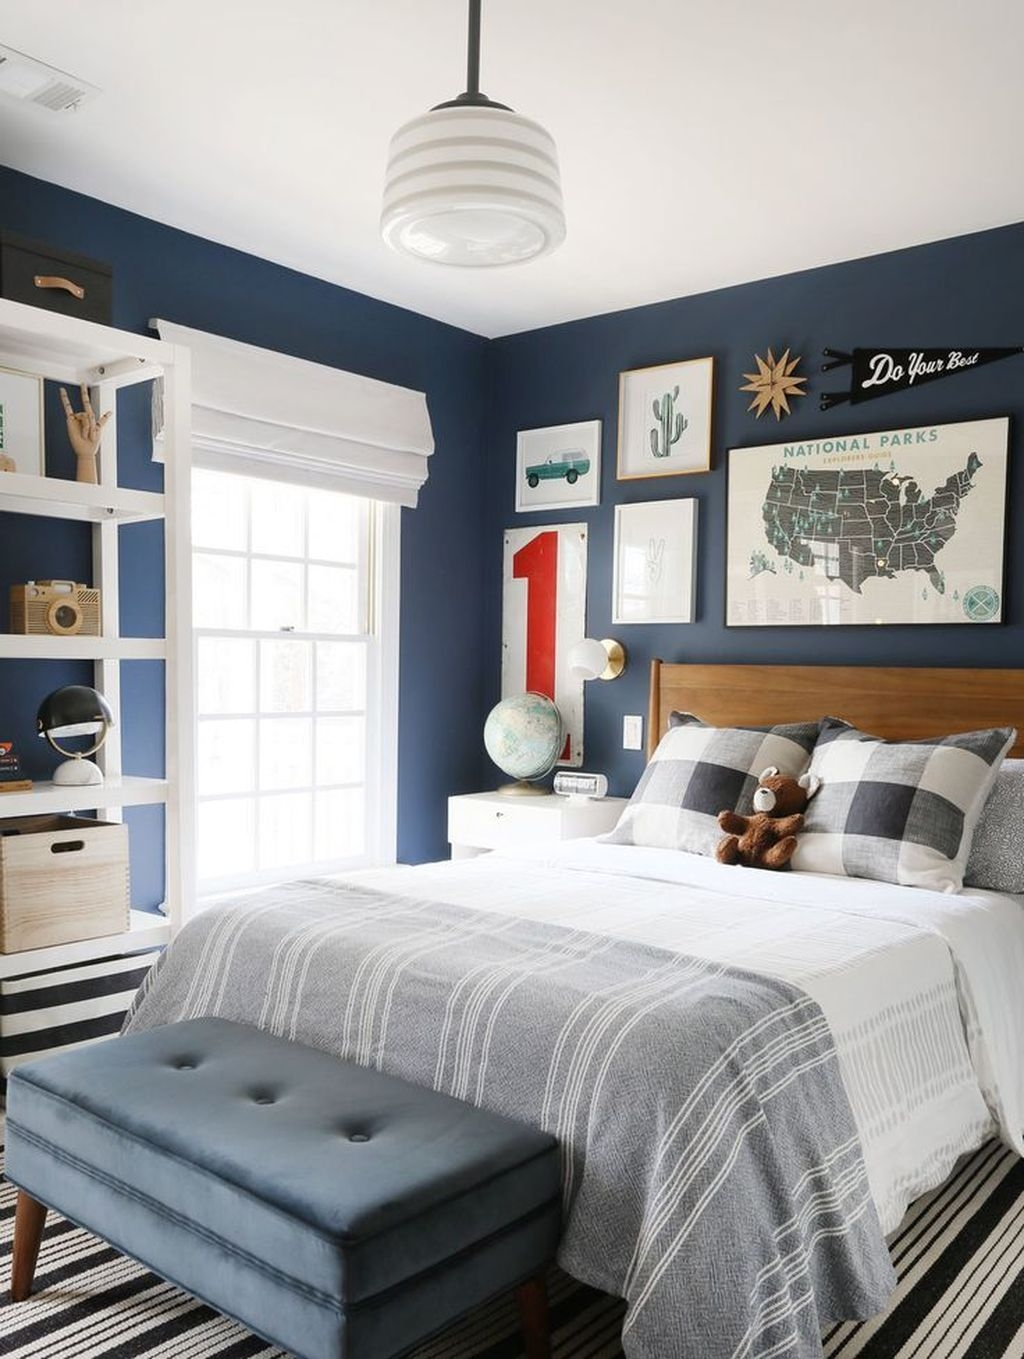 Unusual Kids Bedroom Design Ideas On A Budget26